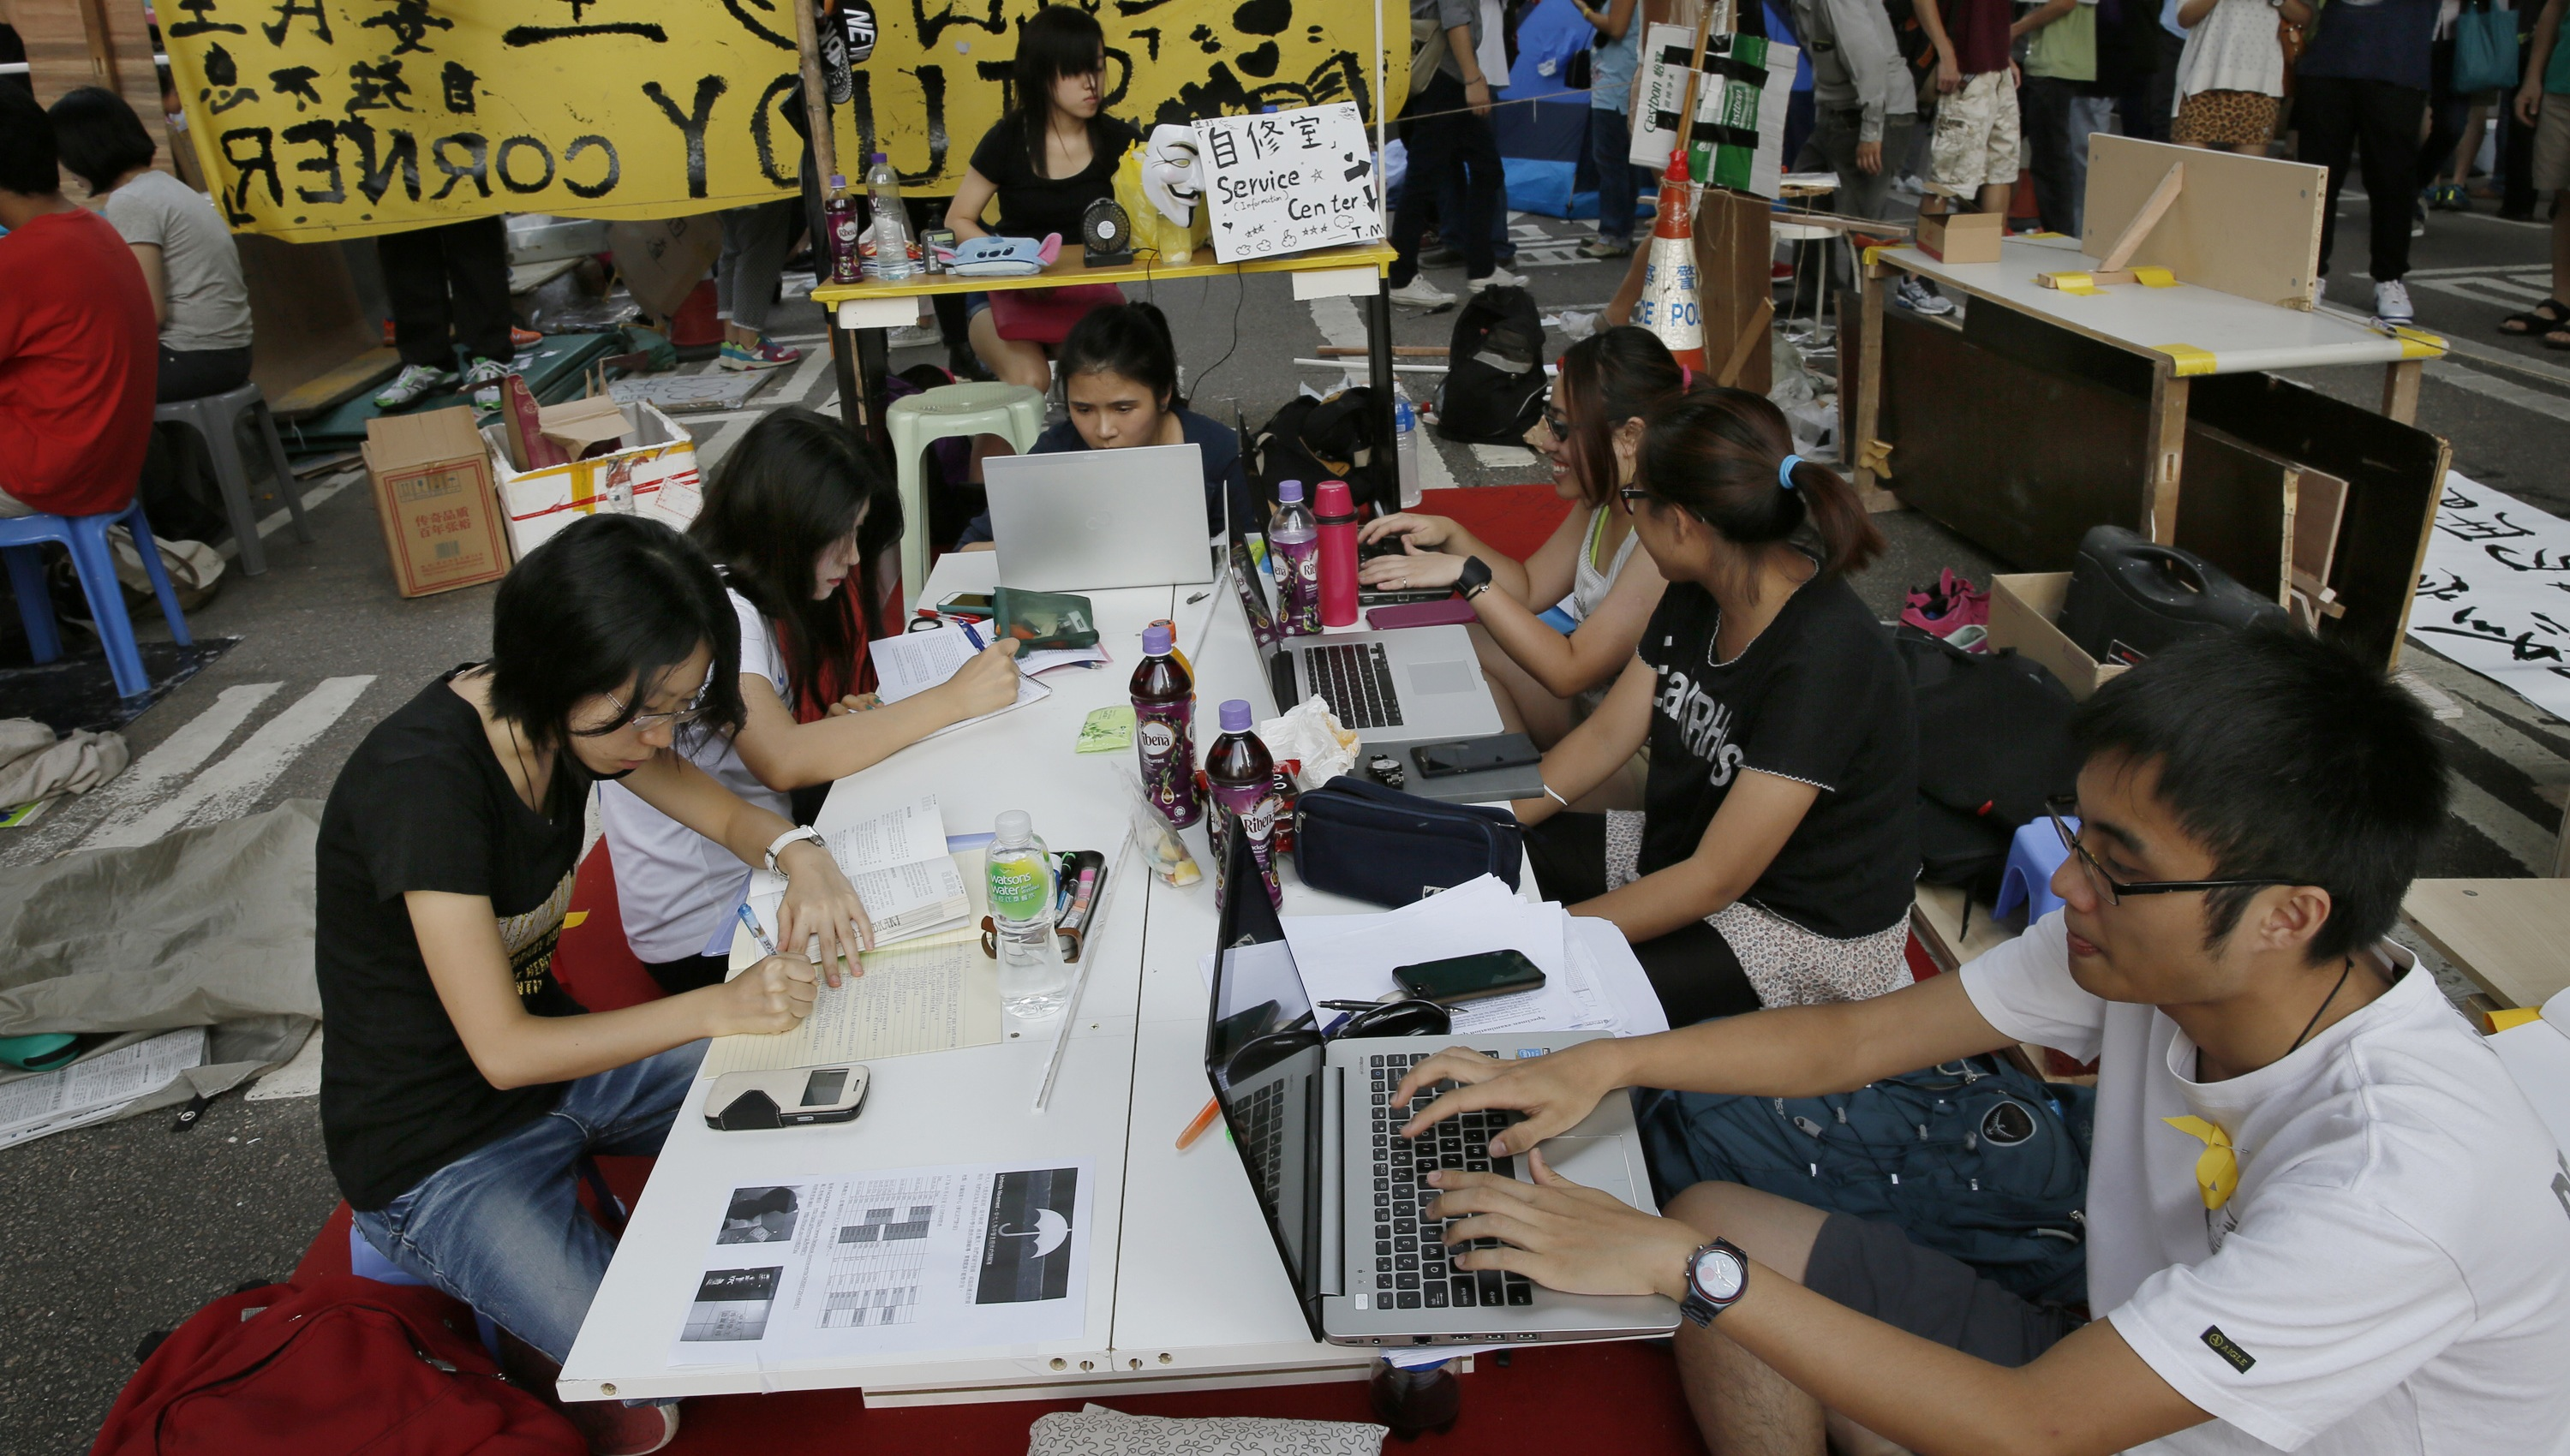 Pro-democracy students do their homework at a study area at a main road in the occupied areas in Hong Kong's Admiralty district, Saturday, Oct. 11, 2014. Students and activists demanding a greater say in choosing the city's leader have vowed to stay until the government responds, while the government has repeatedly urged protesters to withdraw from the streets and allow the city to return to normal. (AP Photo/Vincent Yu)